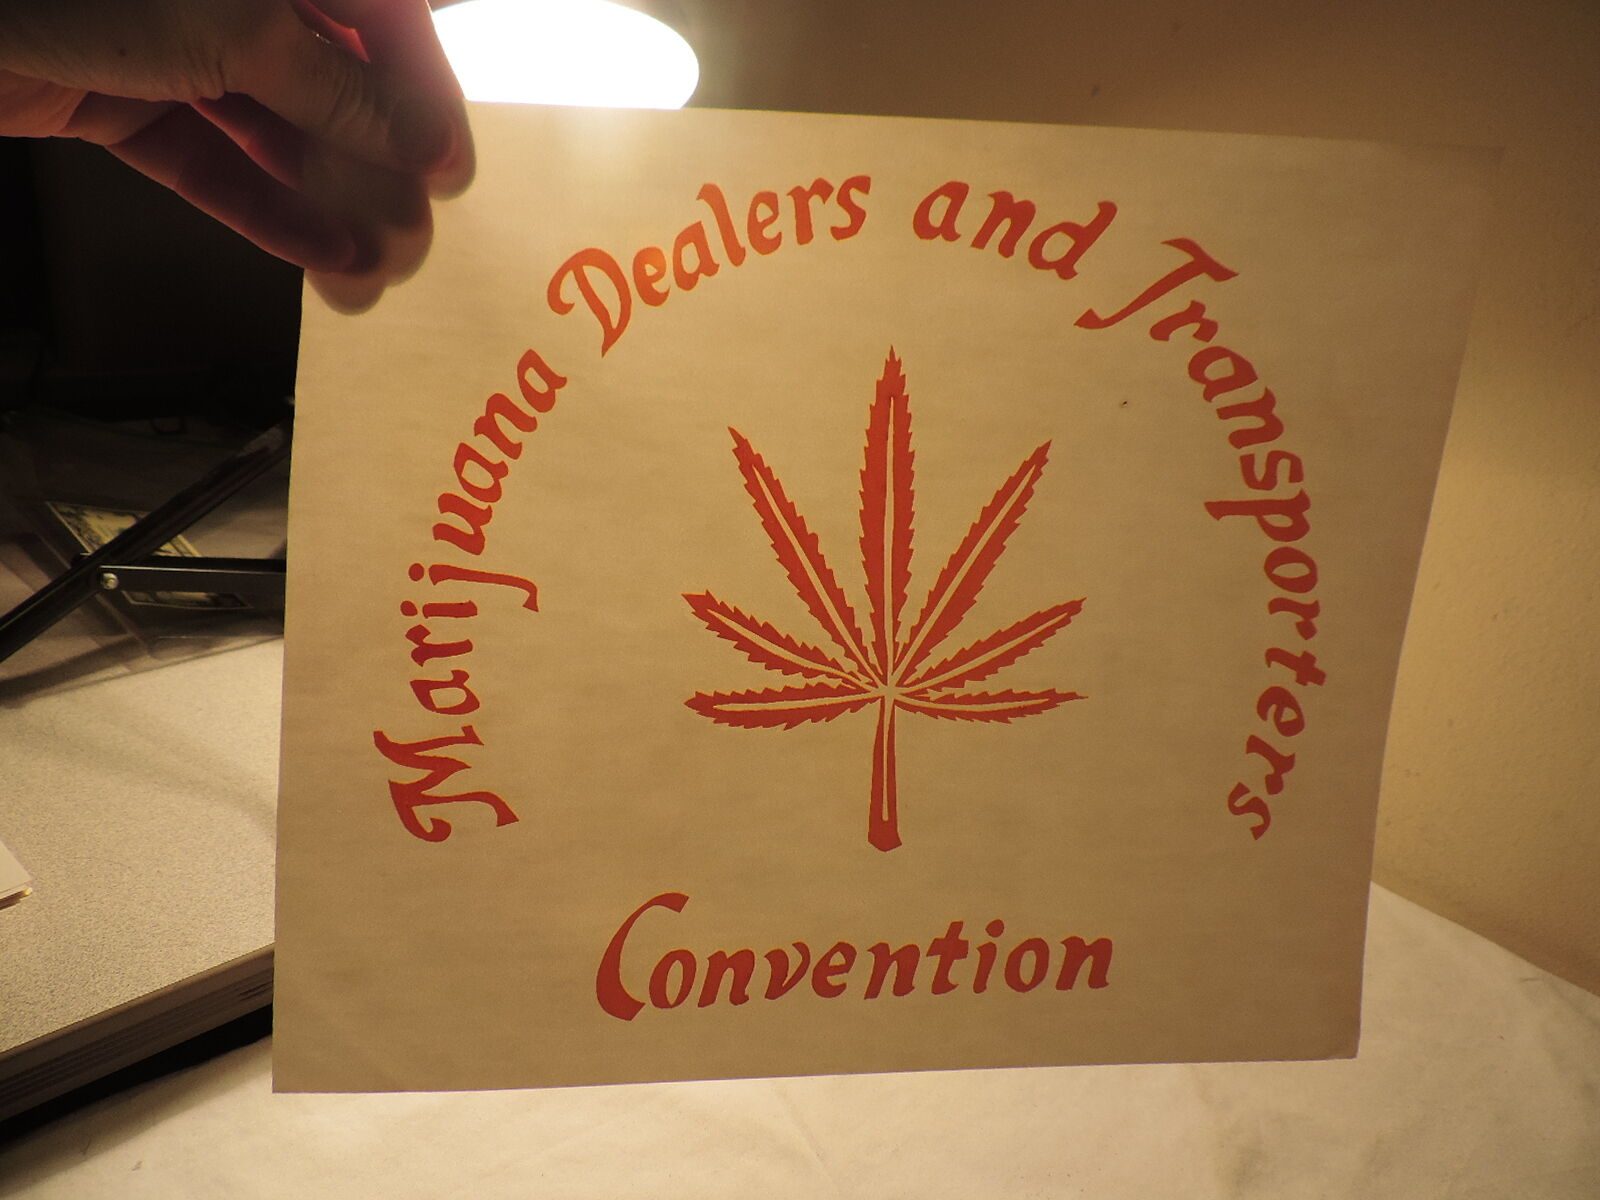 Marijuana's Dealers Transporters Convention IRON ON ROACH T SHIRT TRANSFER 61a 1